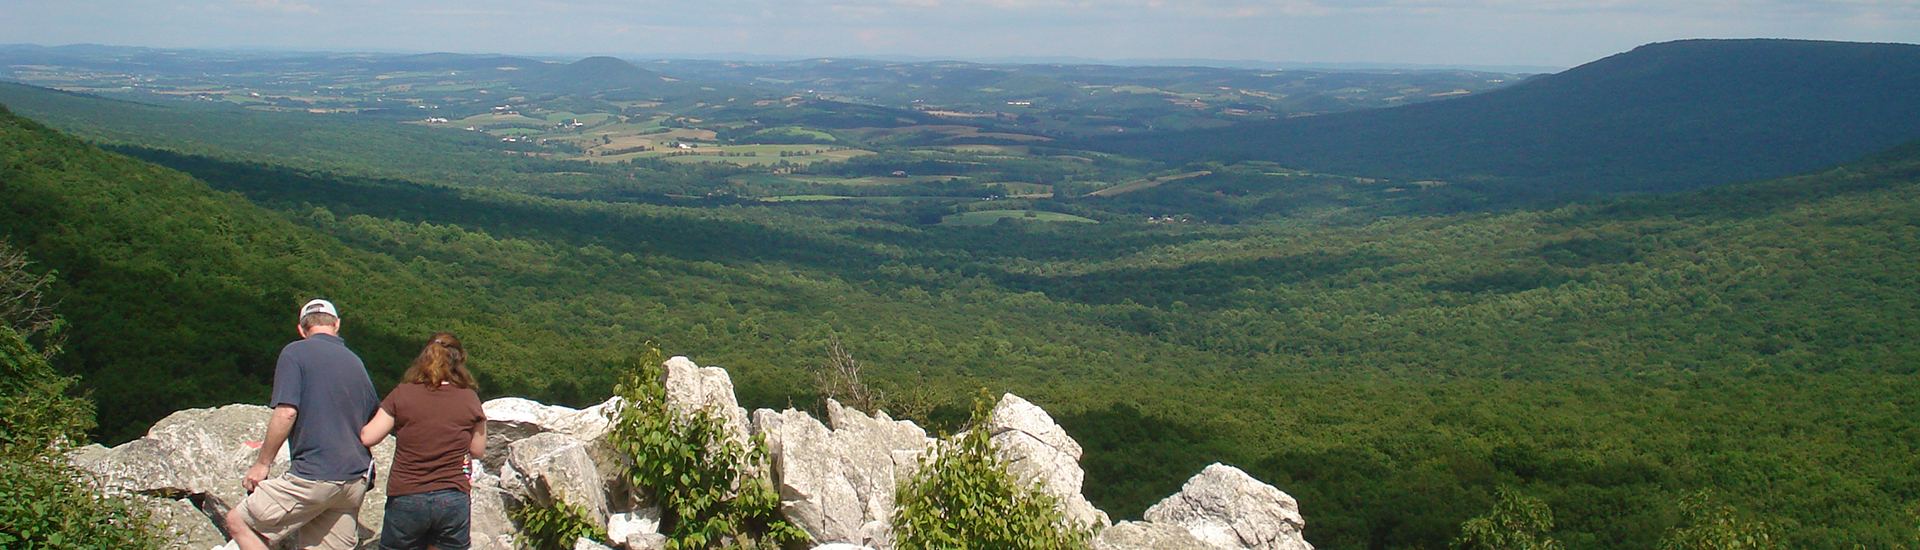 The view from Hawk Mountain.